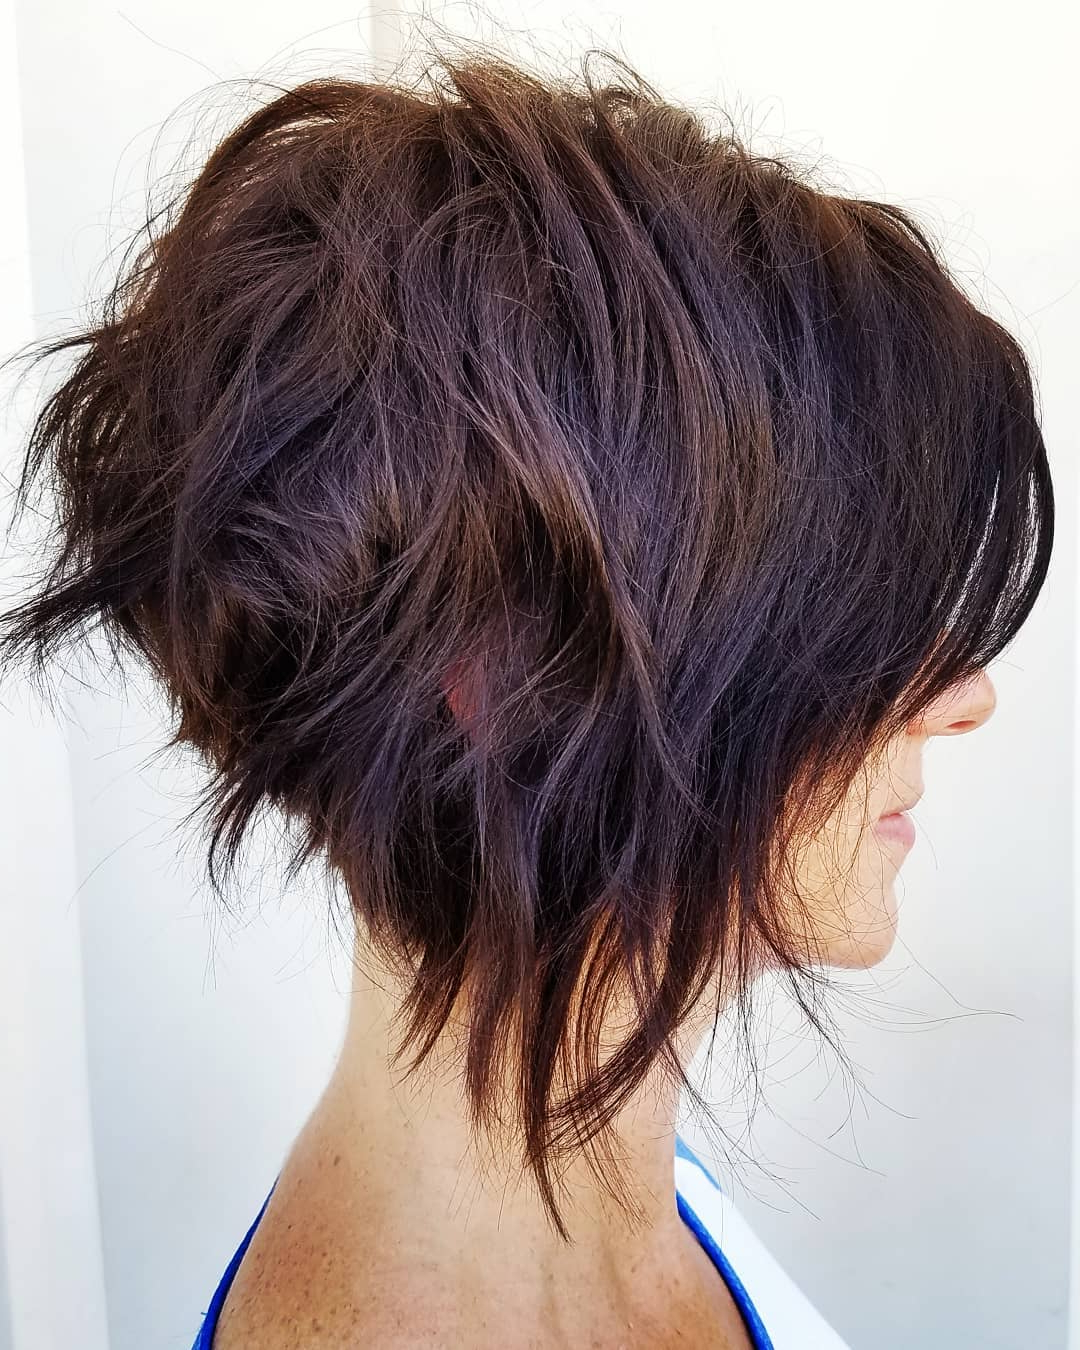 10 Trendy Messy Bob Hairstyles And Haircuts, 2019 Female Short Hair Regarding Messy Honey Blonde Bob Haircuts (View 4 of 20)